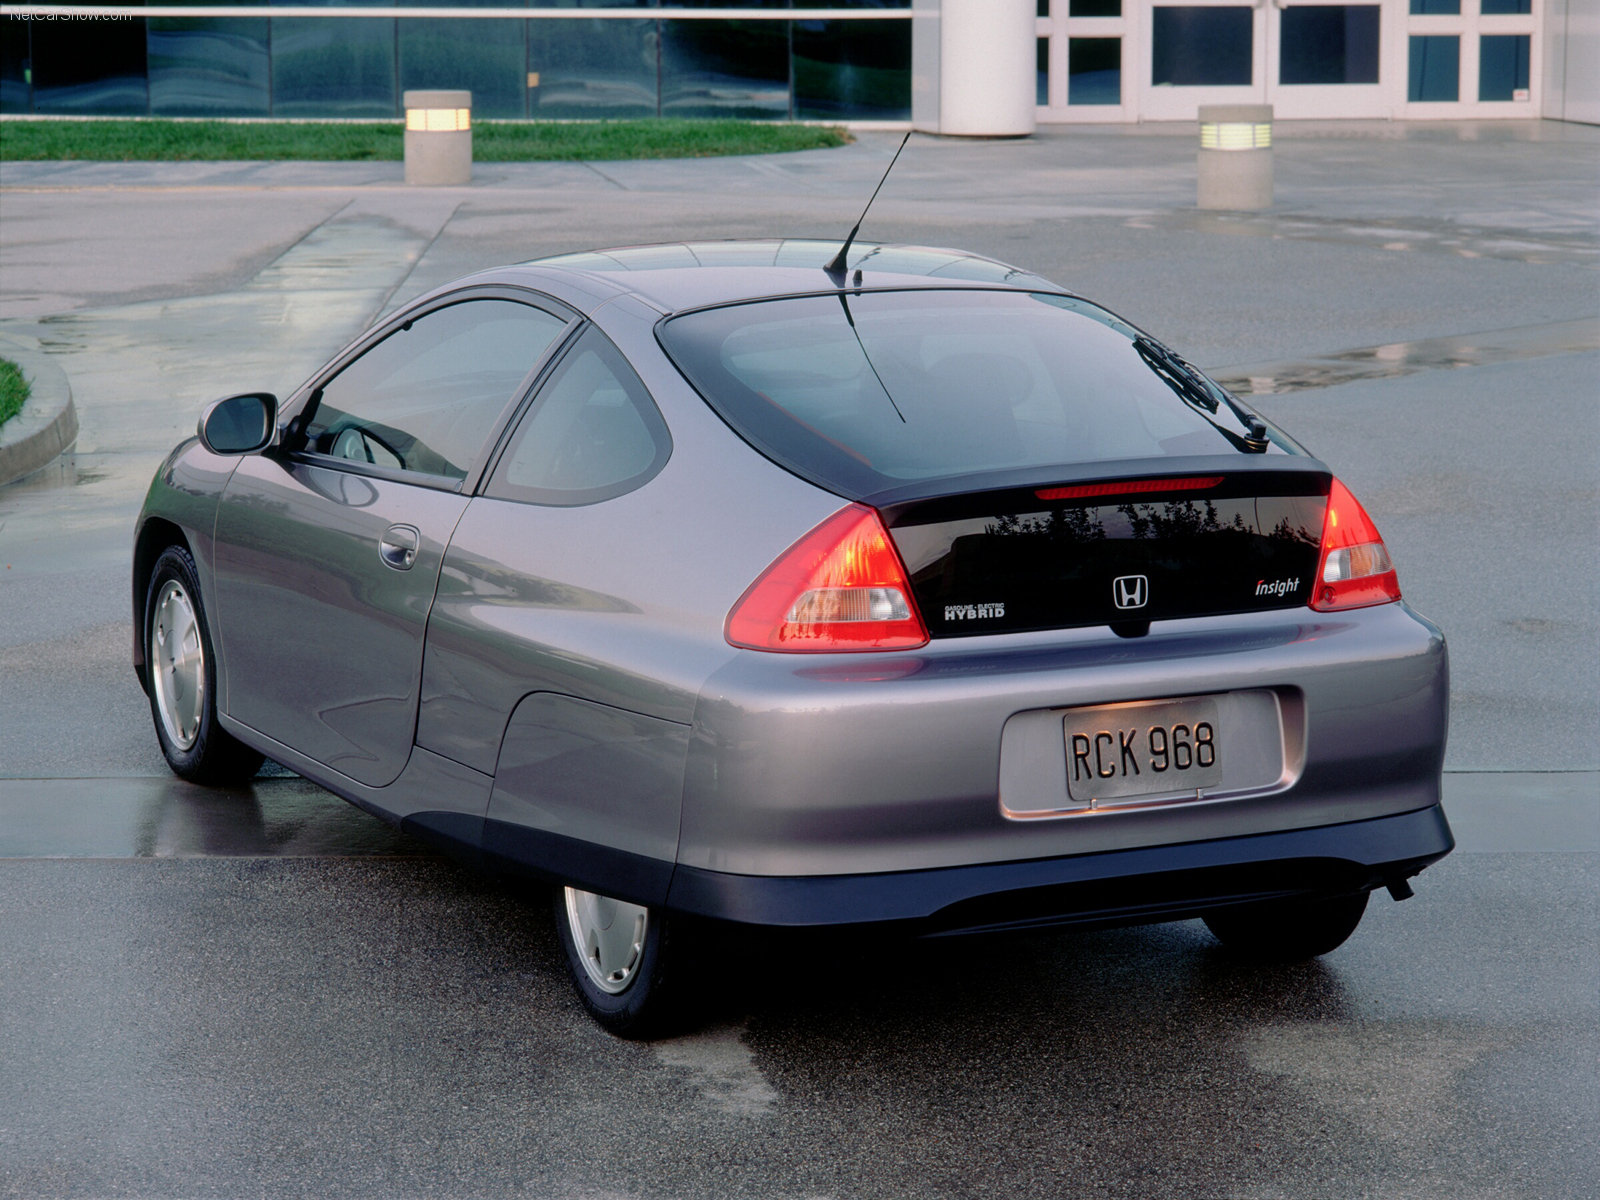 2000 Honda Insight rear 3/4